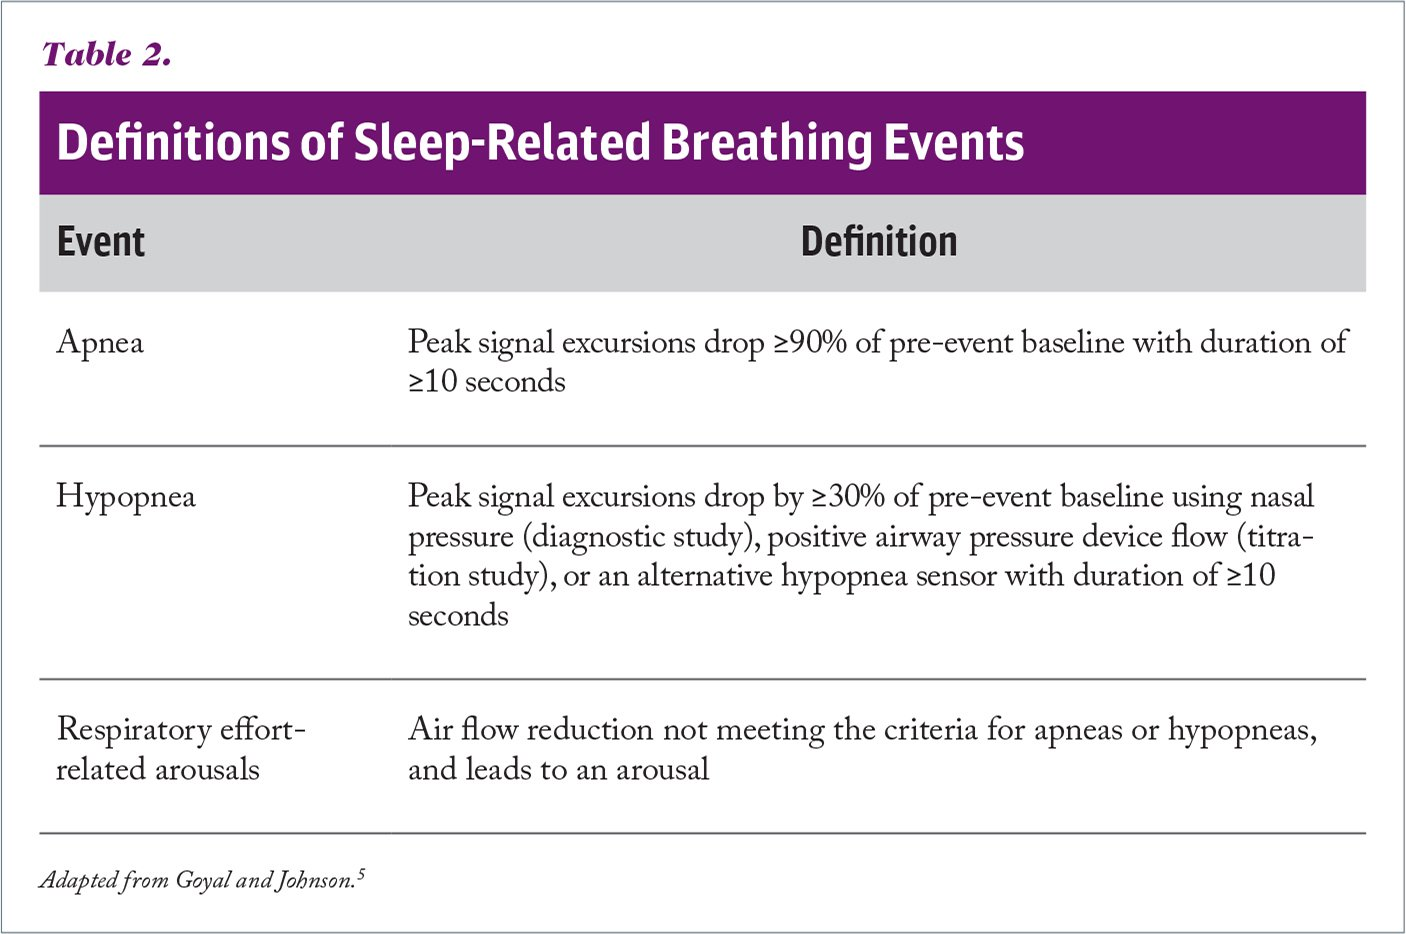 Definitions of Sleep-Related Breathing Events